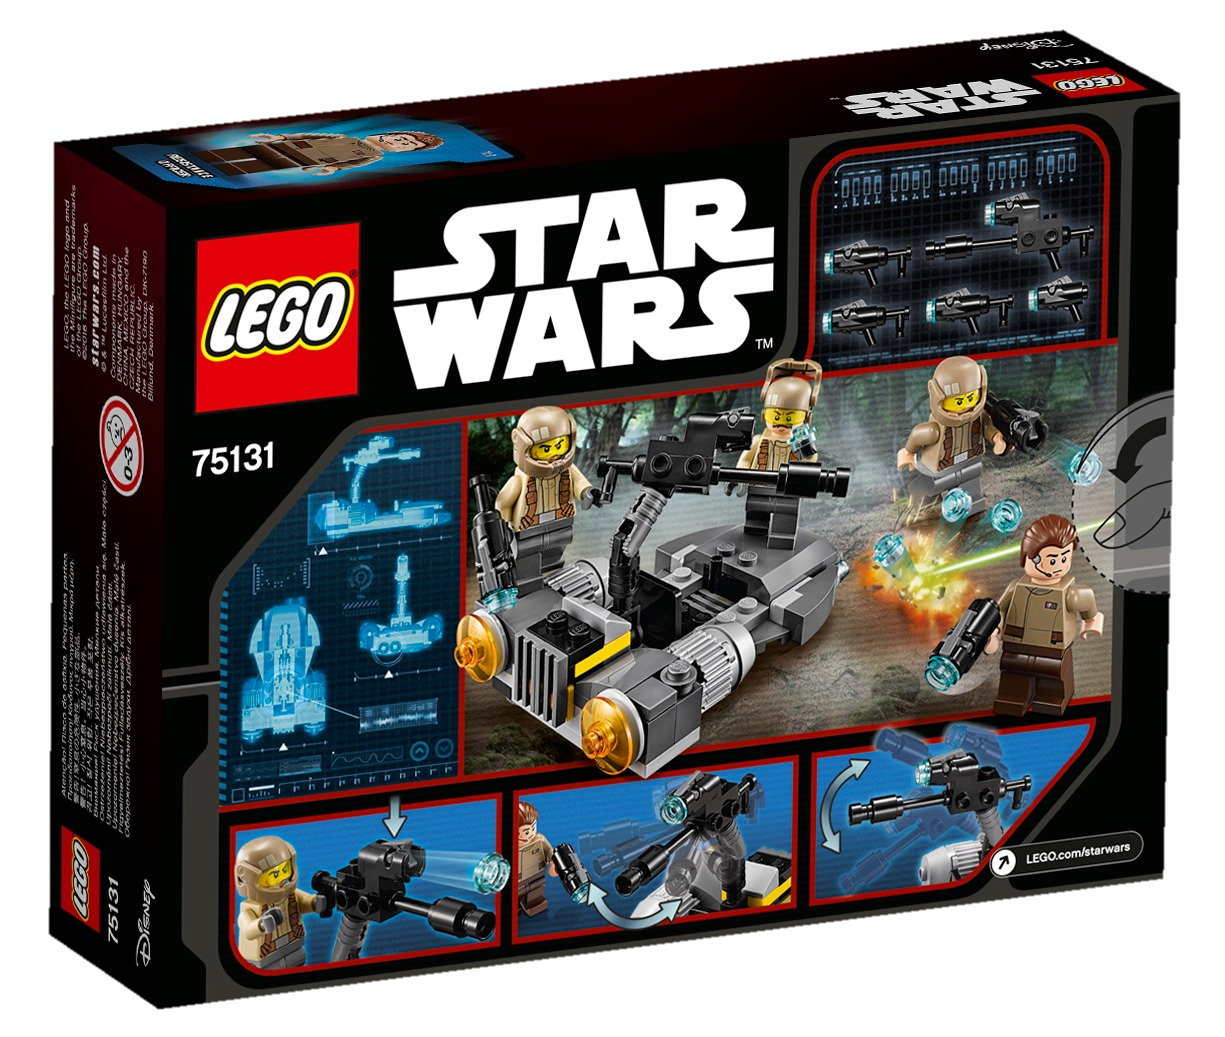 LEGO Star Wars - Resistance Battle Pack (75131) image